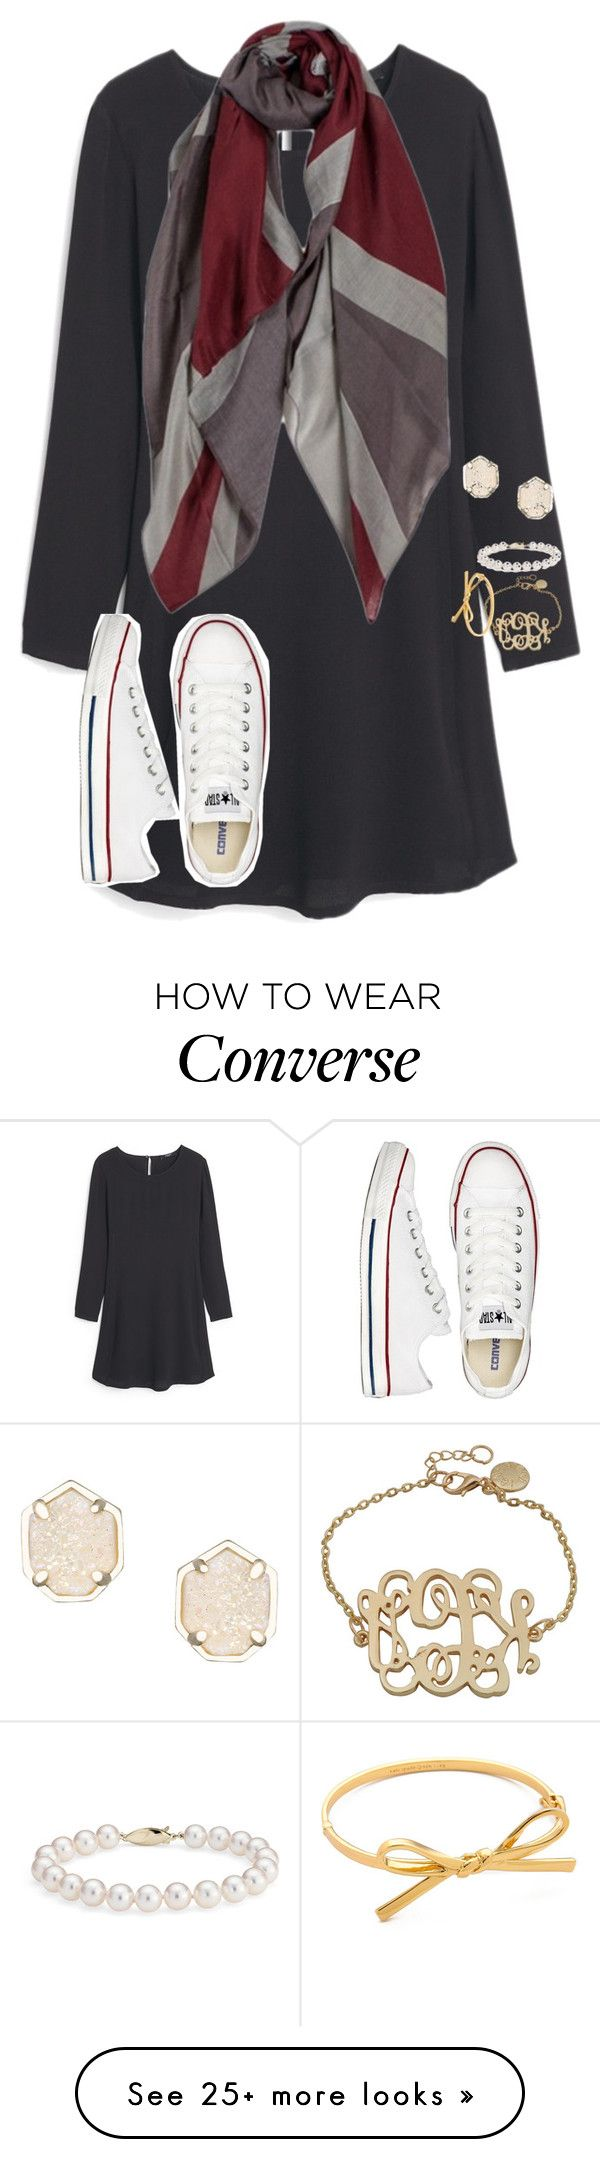 """Made a boat hat today!"" by preppy-southern-gals on Polyvore featuring MANGO, Converse, Blue Nile, Kate Spade and Kendra Scott"